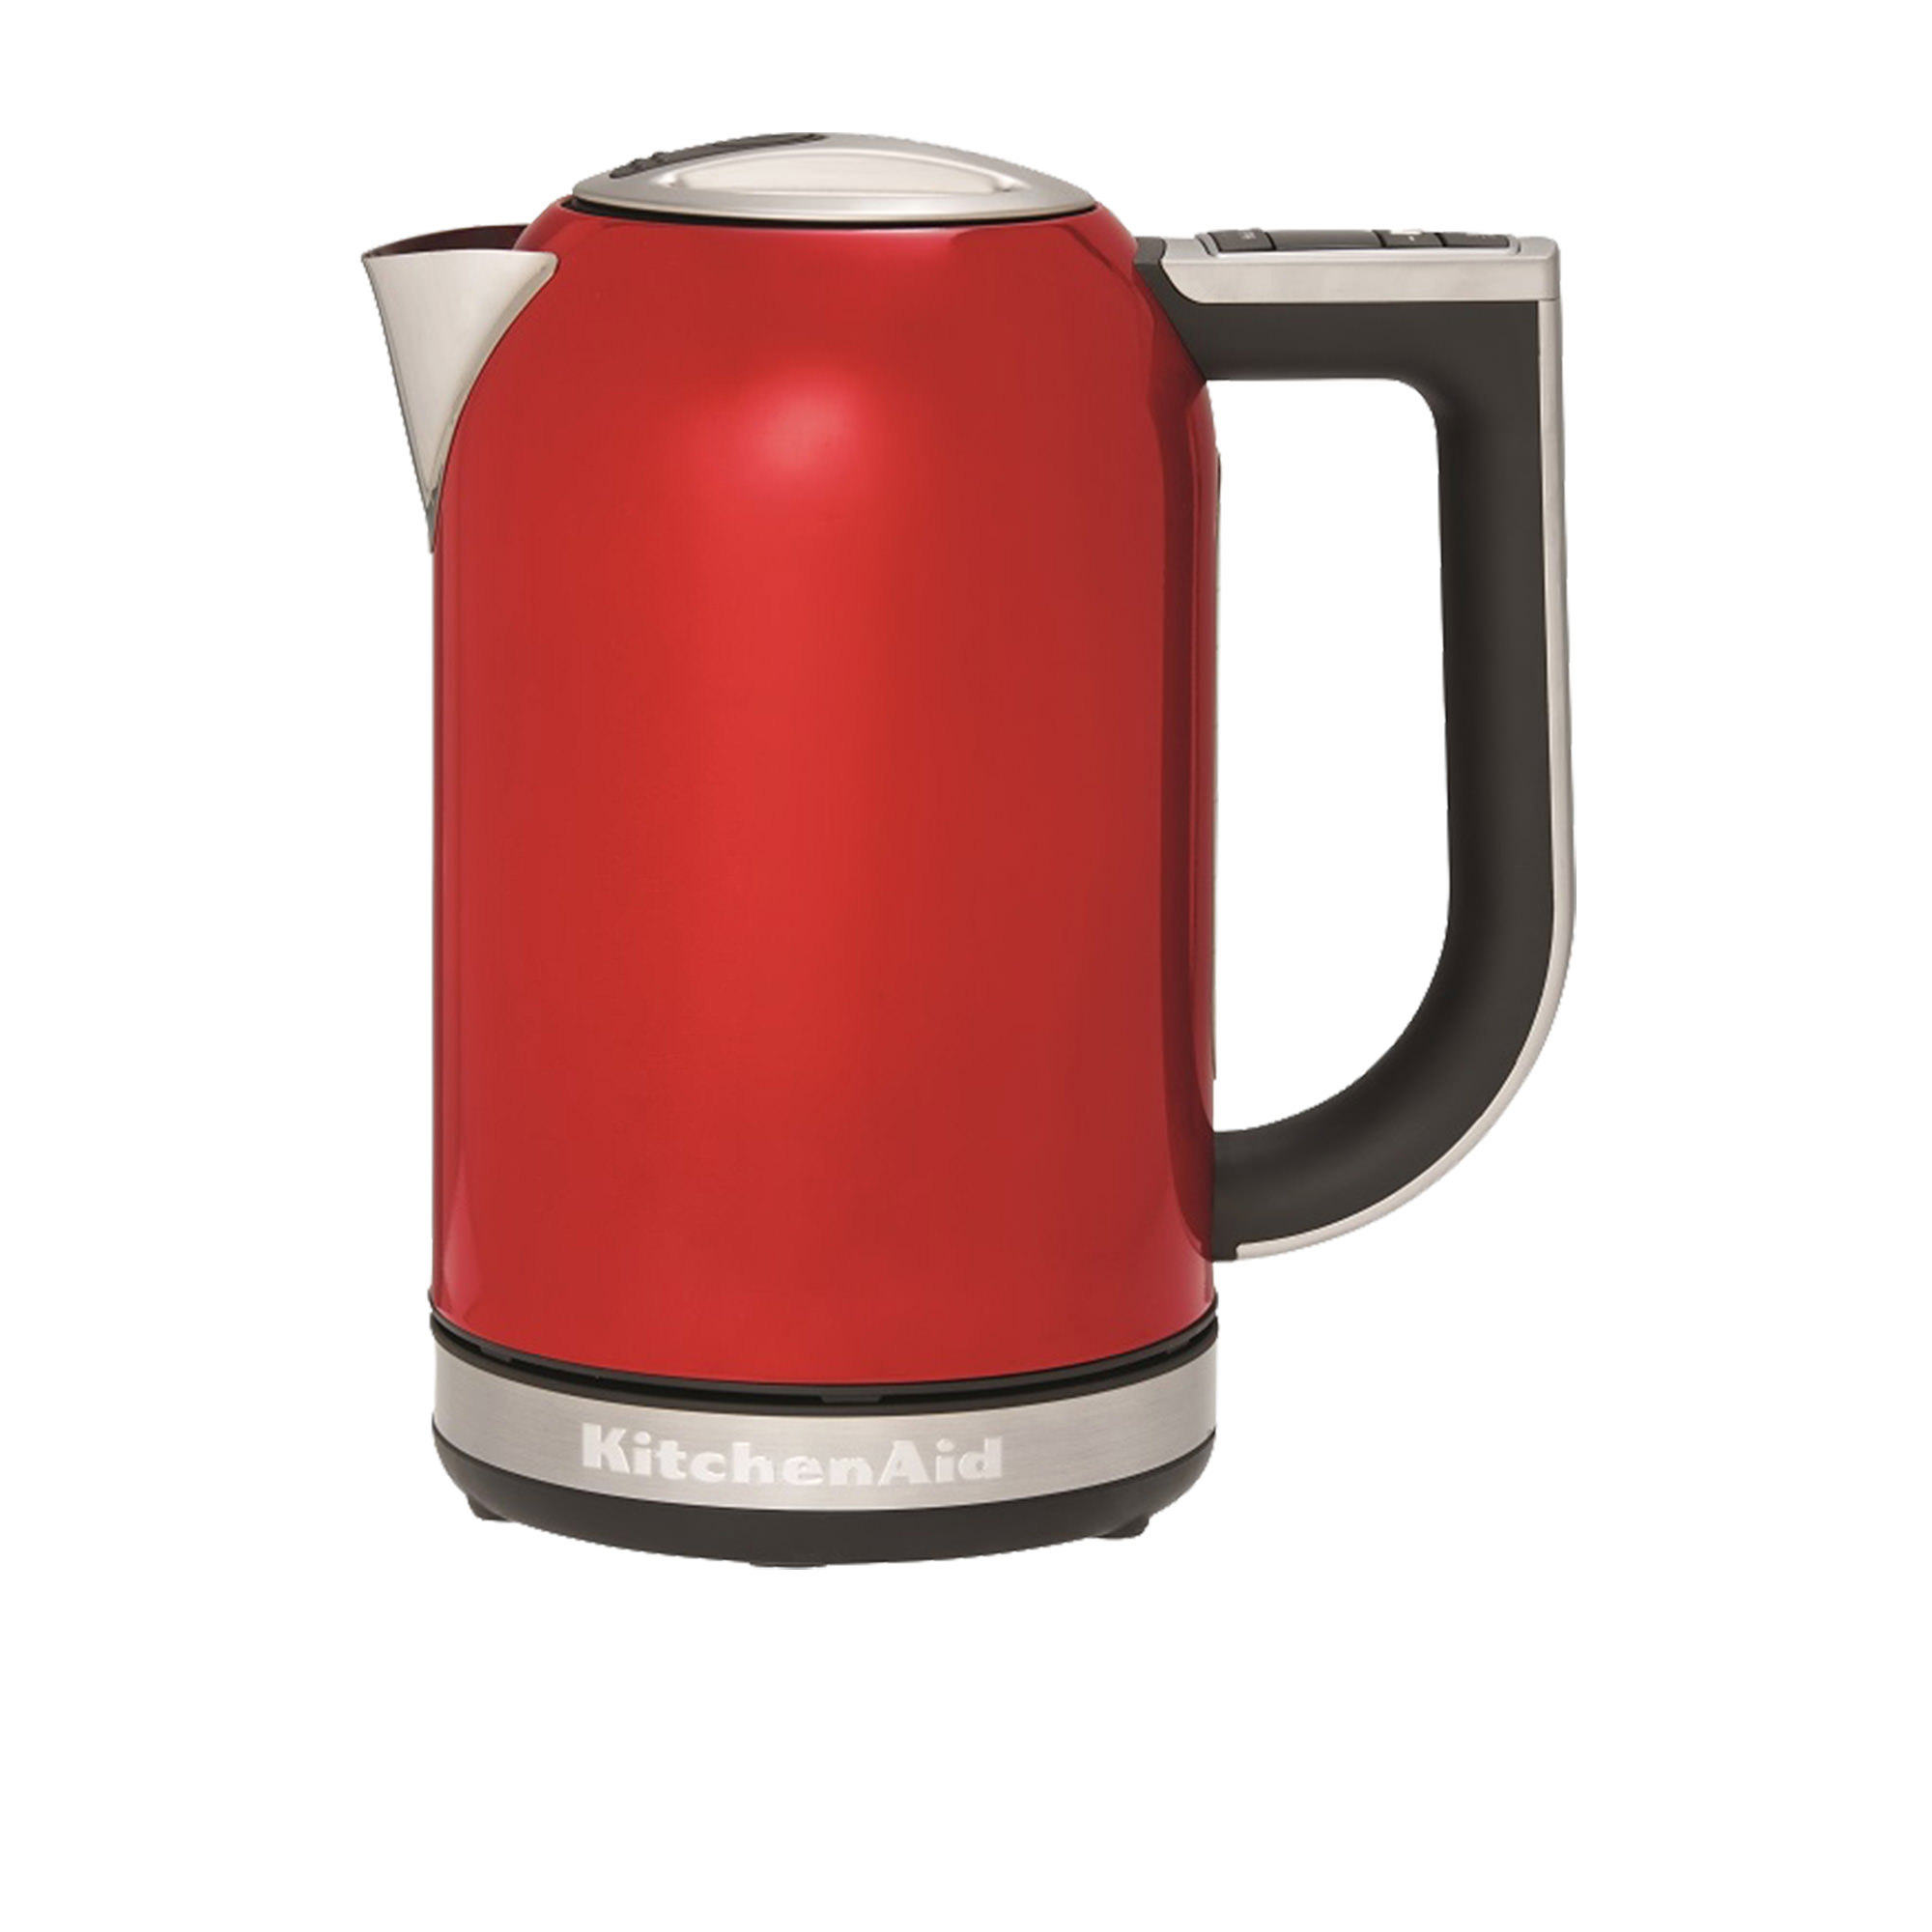 KitchenAid Artisan KEK1835 Electric Kettle 1.7L Empire Red